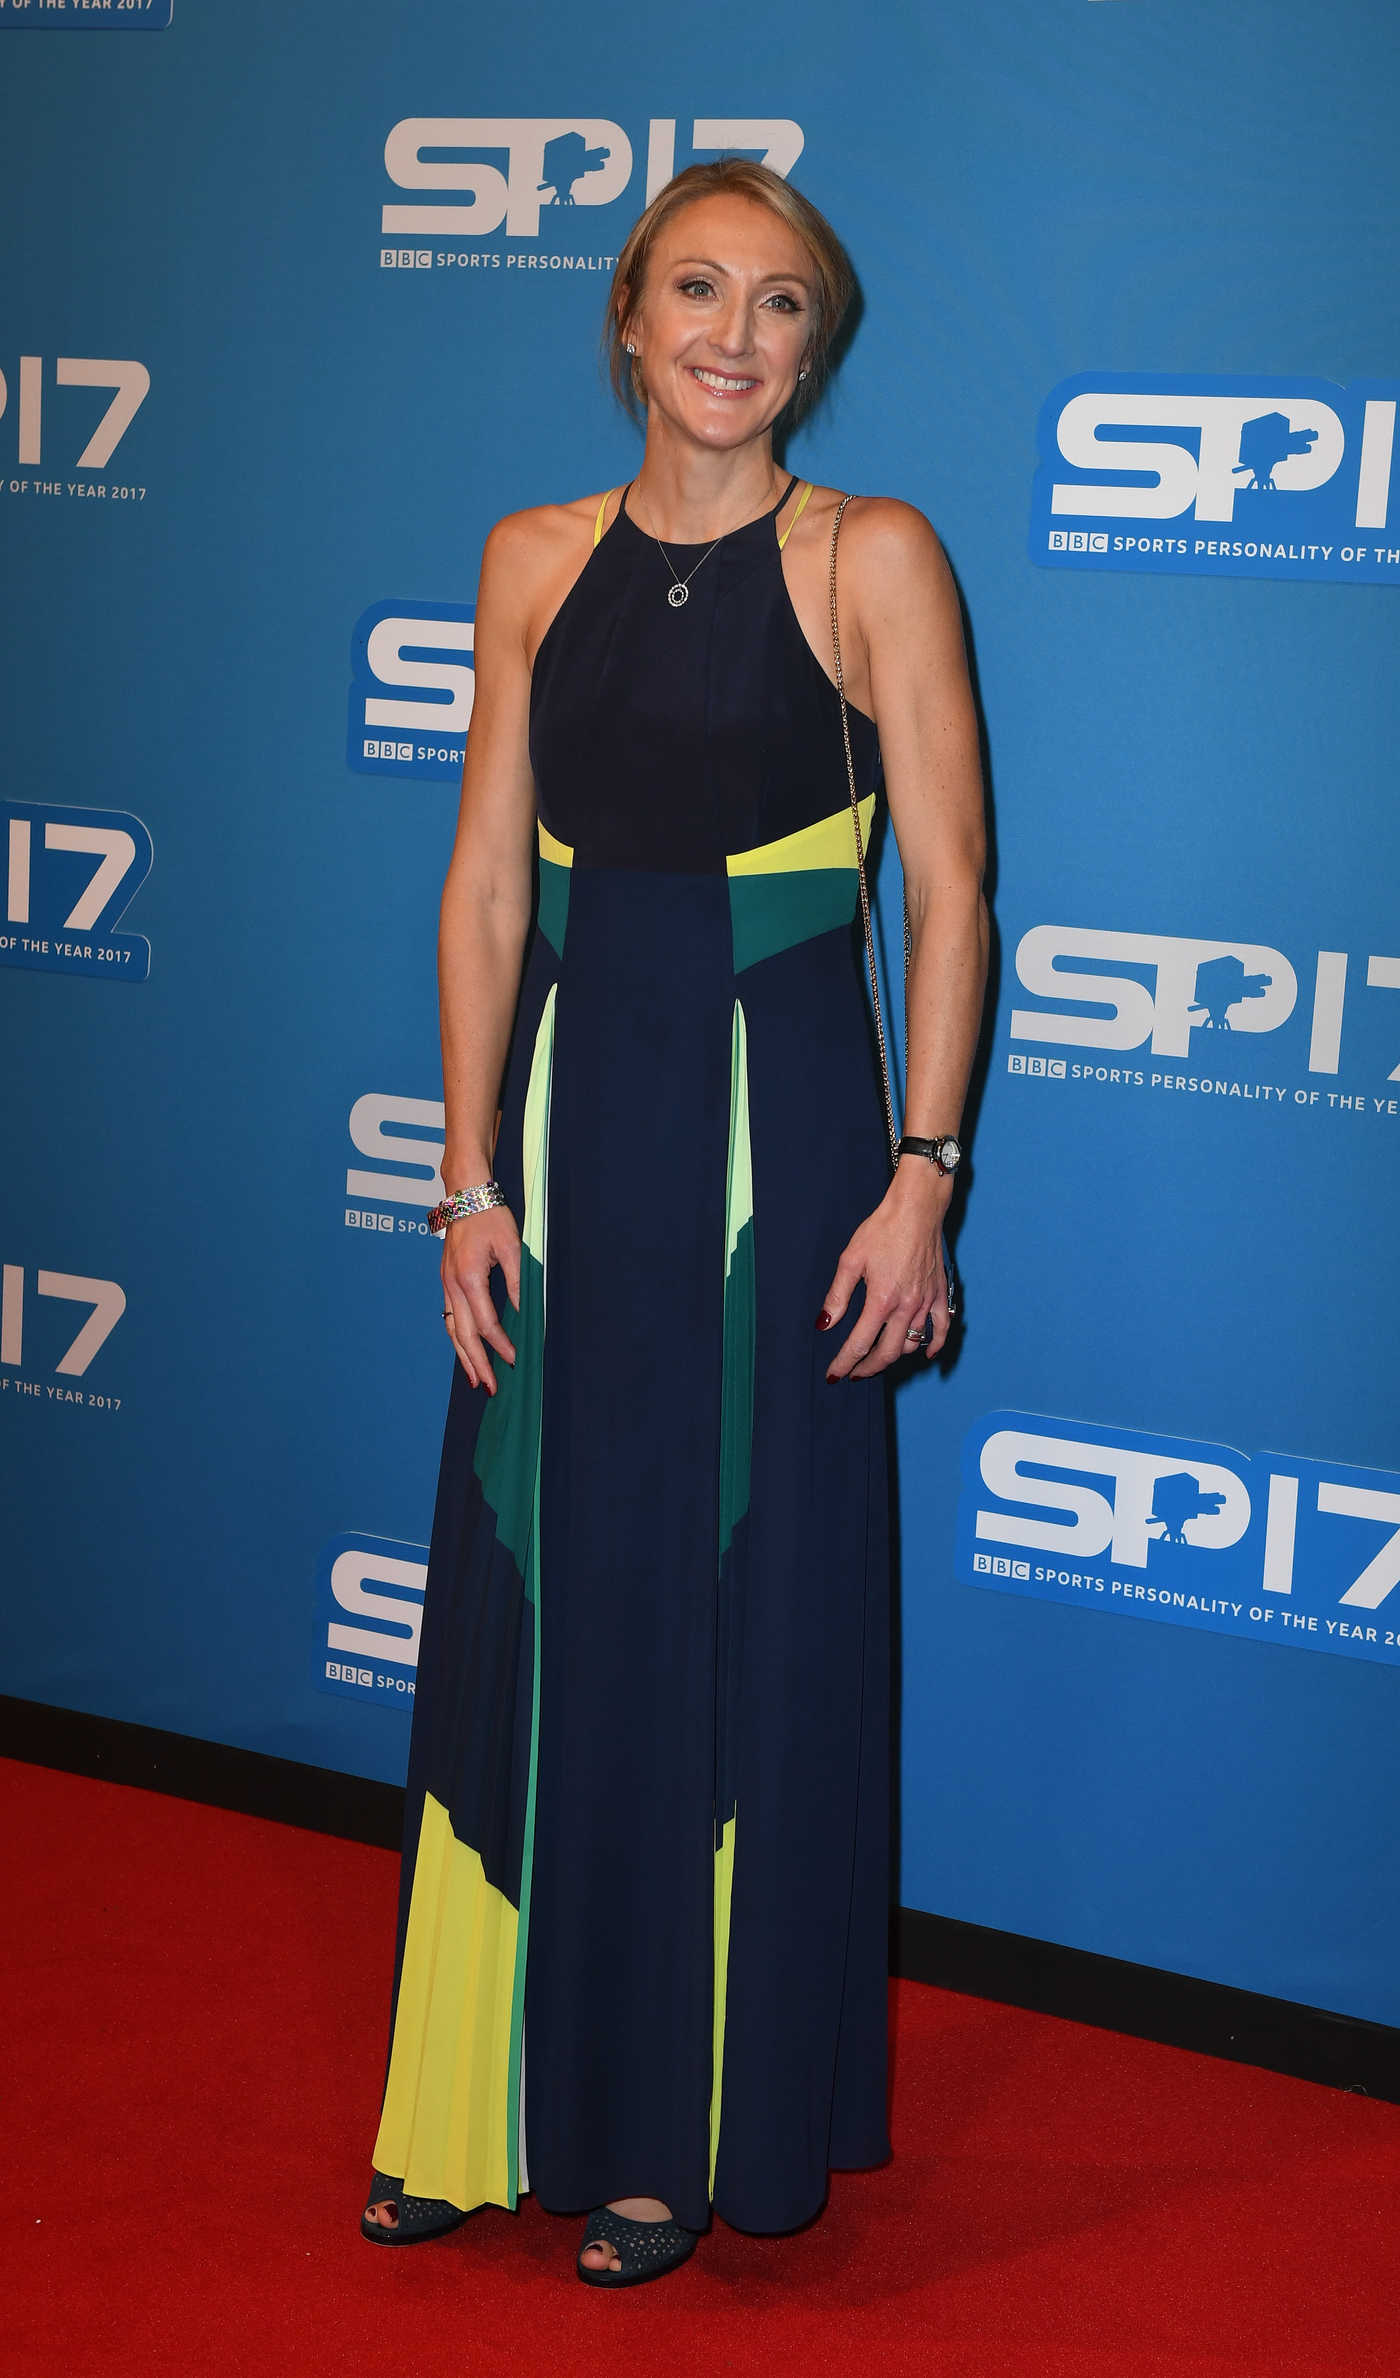 Paula Radcliffe at 2017 BBC Sports Personality of The Year at Echo Arena in Liverpool 12/17/2017